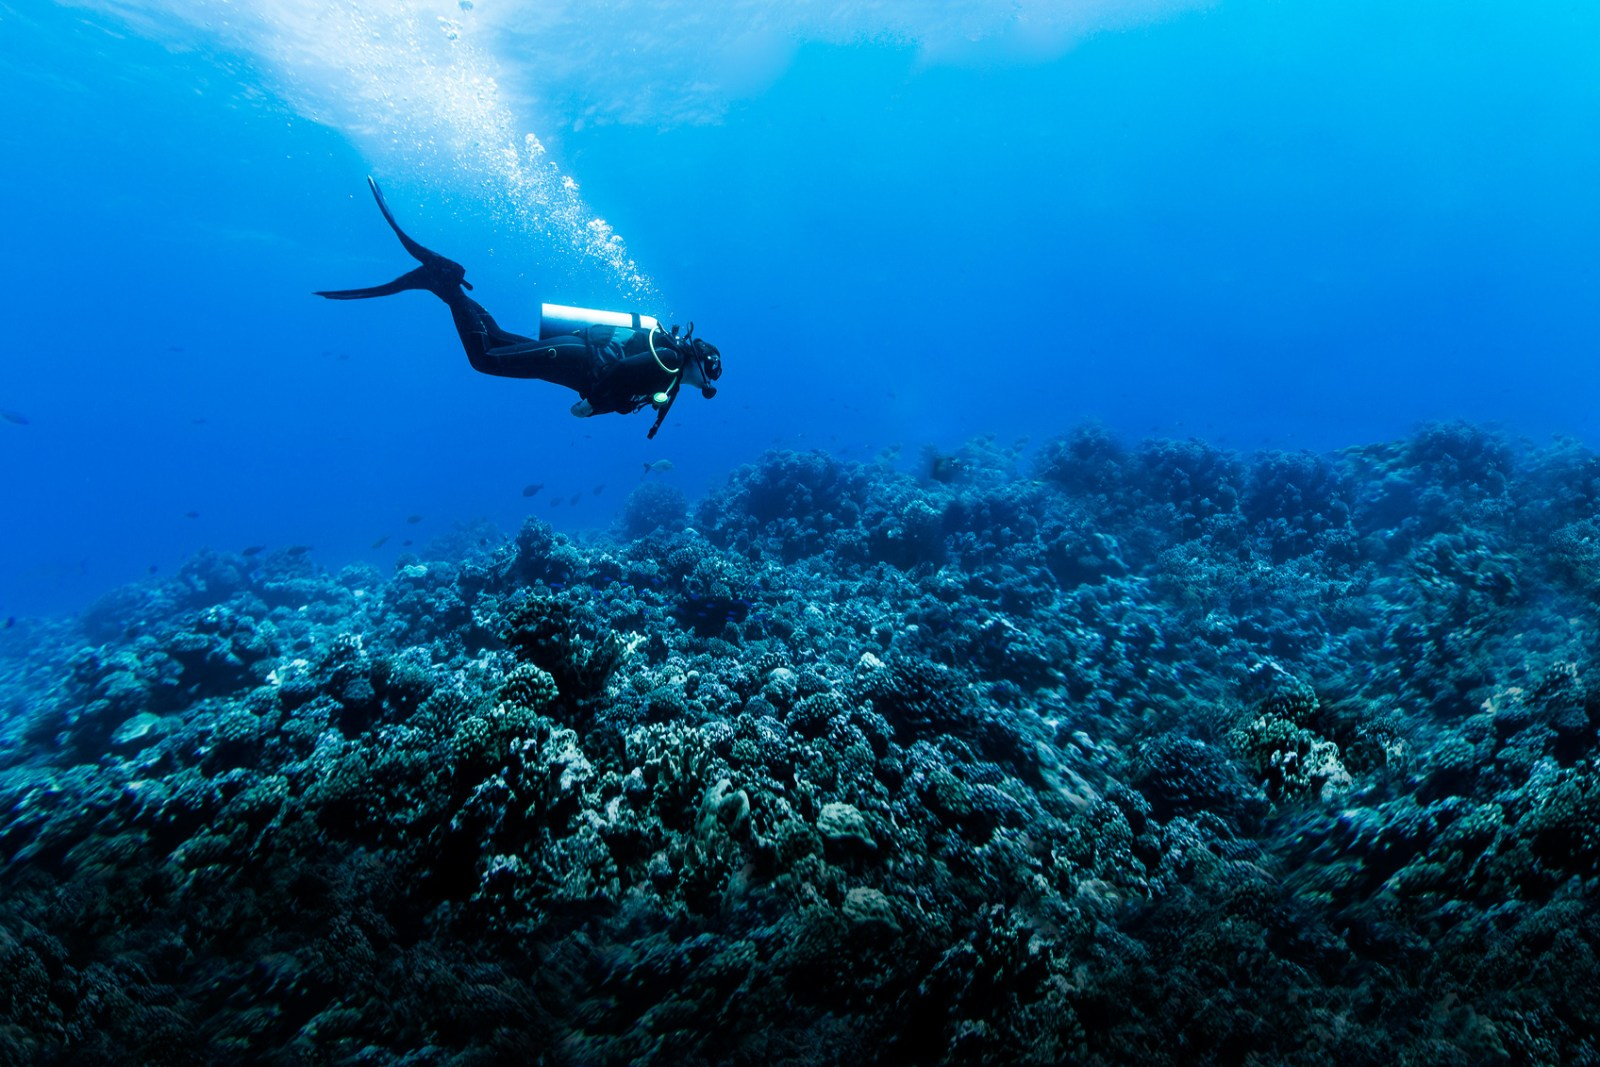 Woman Scuba Diving Over Huge Reef